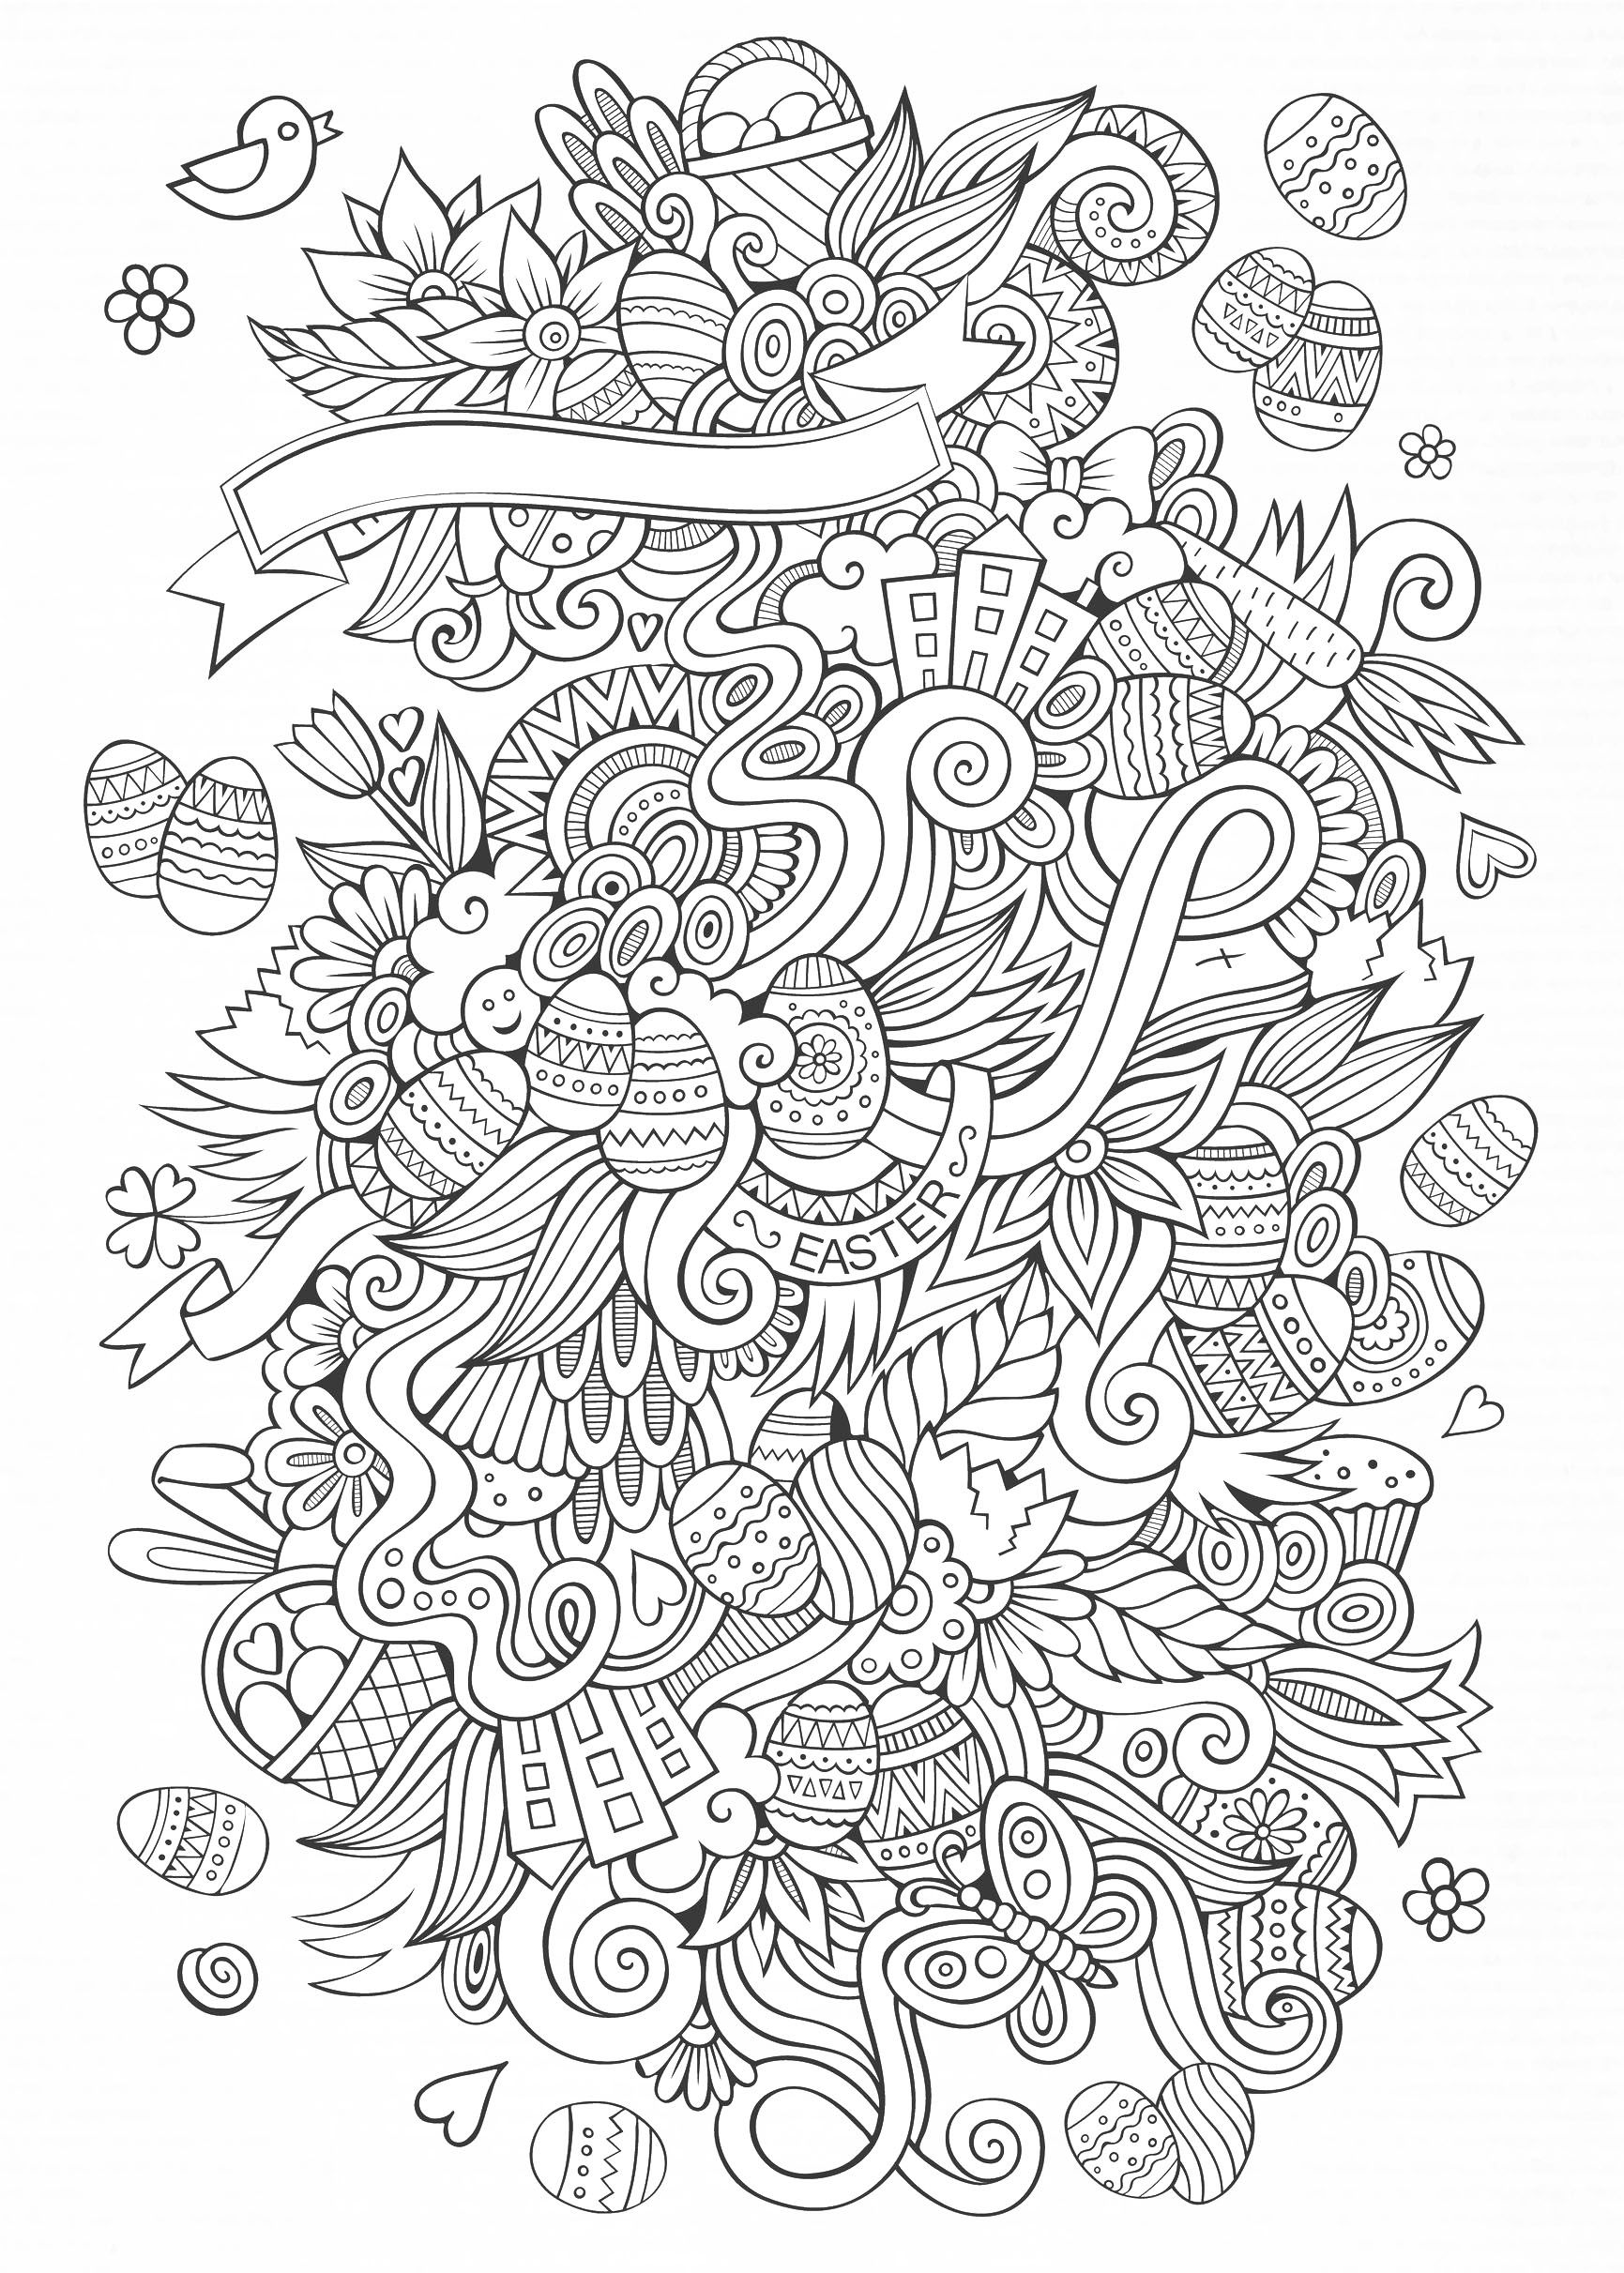 Easter eggs, Easter bunnies, baskets ... In a beautiful doodle ...